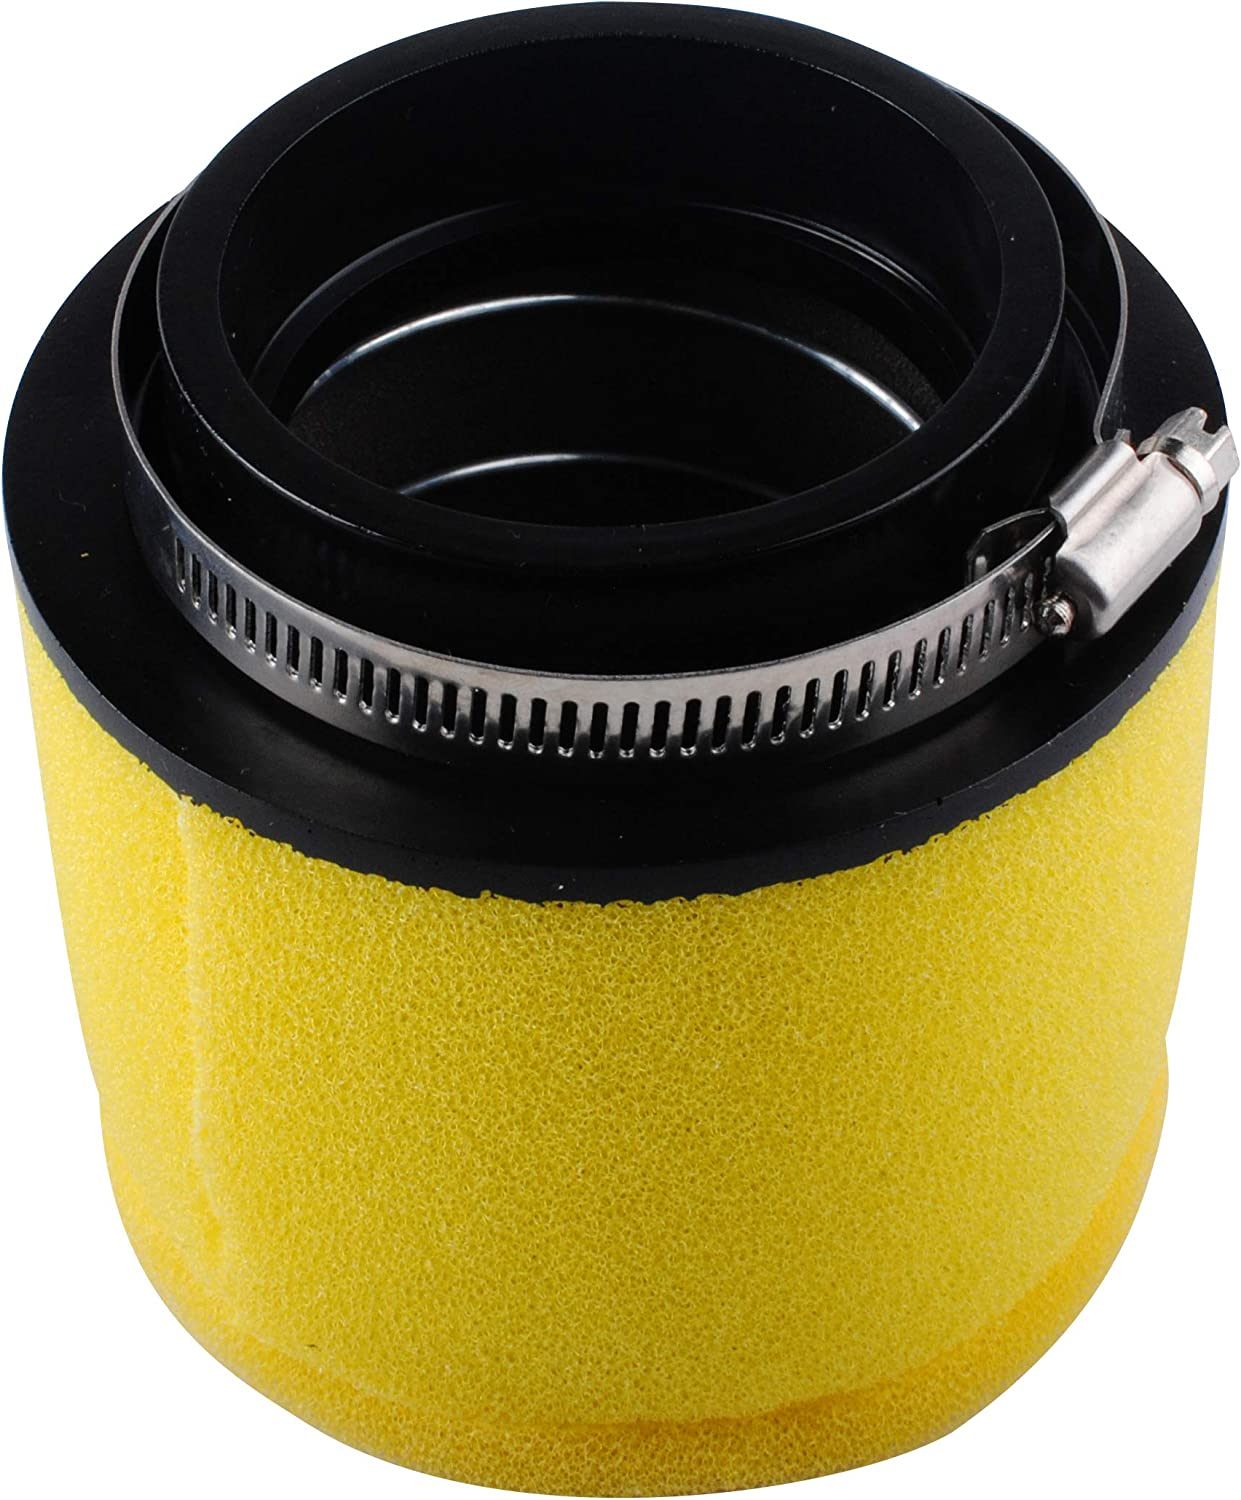 Podoy Dual Stage 500 Air Filter 0470-391 For Compatible with Arctic Cat 375 454 400 500 Bearcat 2x4 4x4 0470-322 ATV Parts